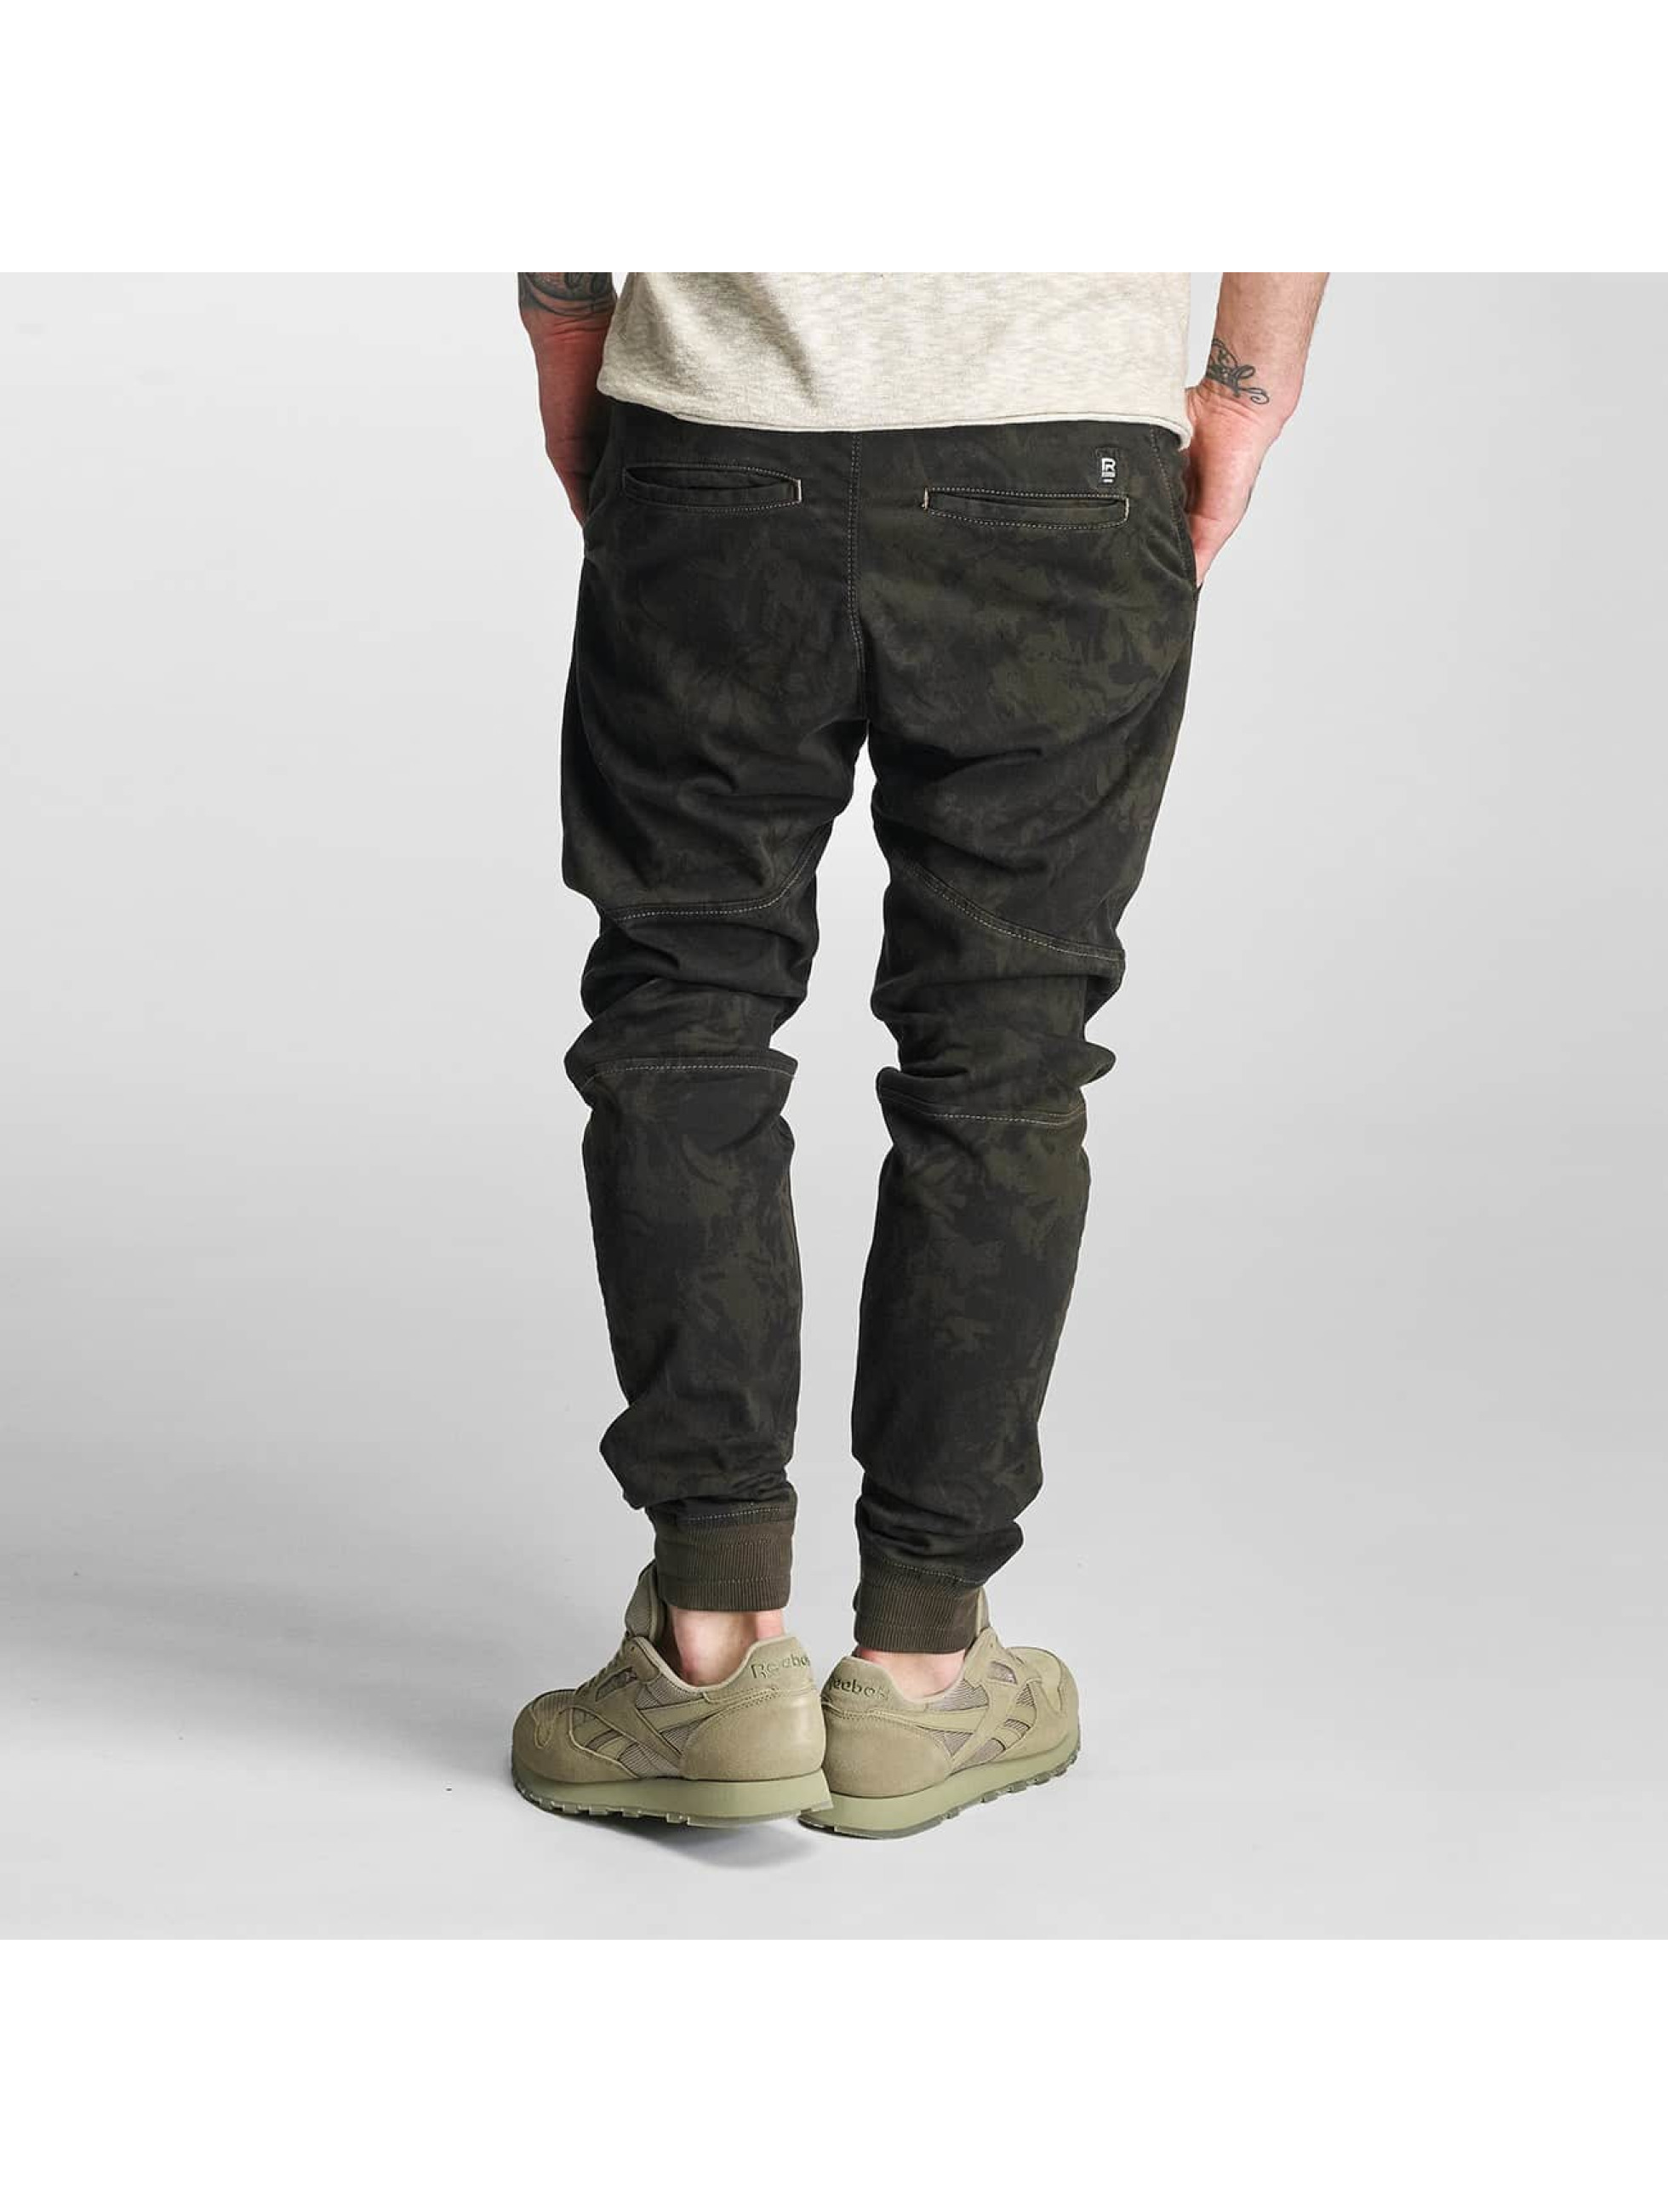 Red Bridge Joggingbukser Spassk khaki